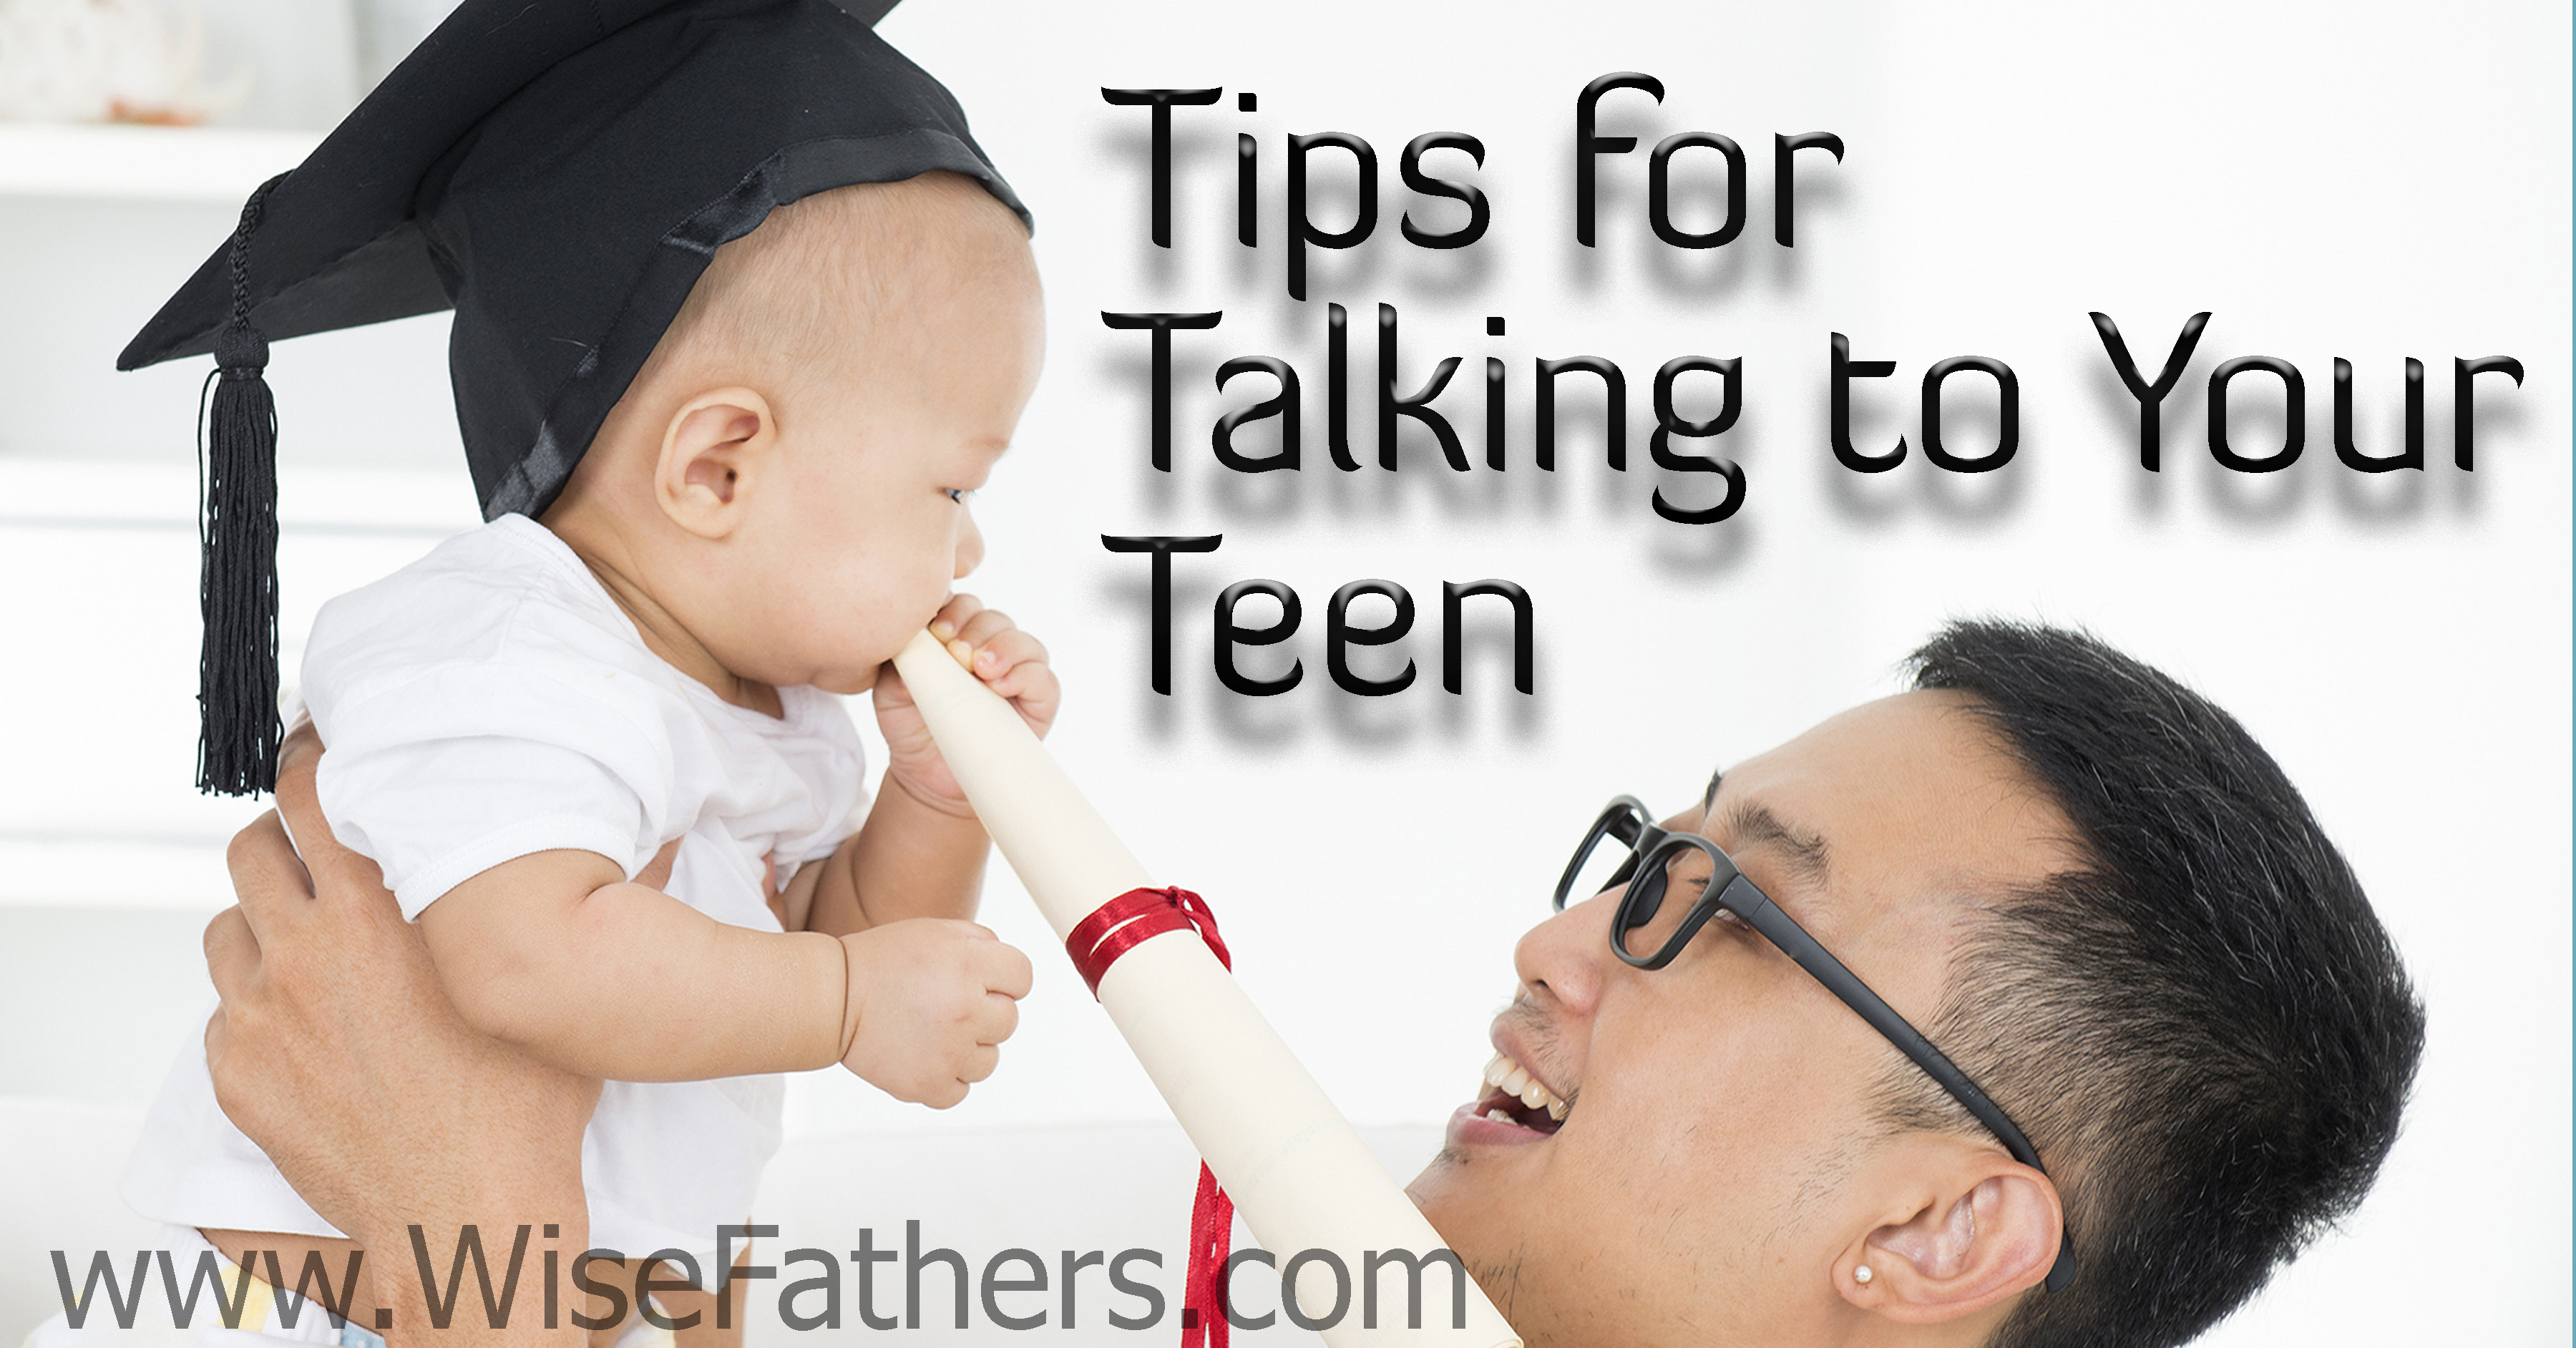 Tips for Talking to Your Teen